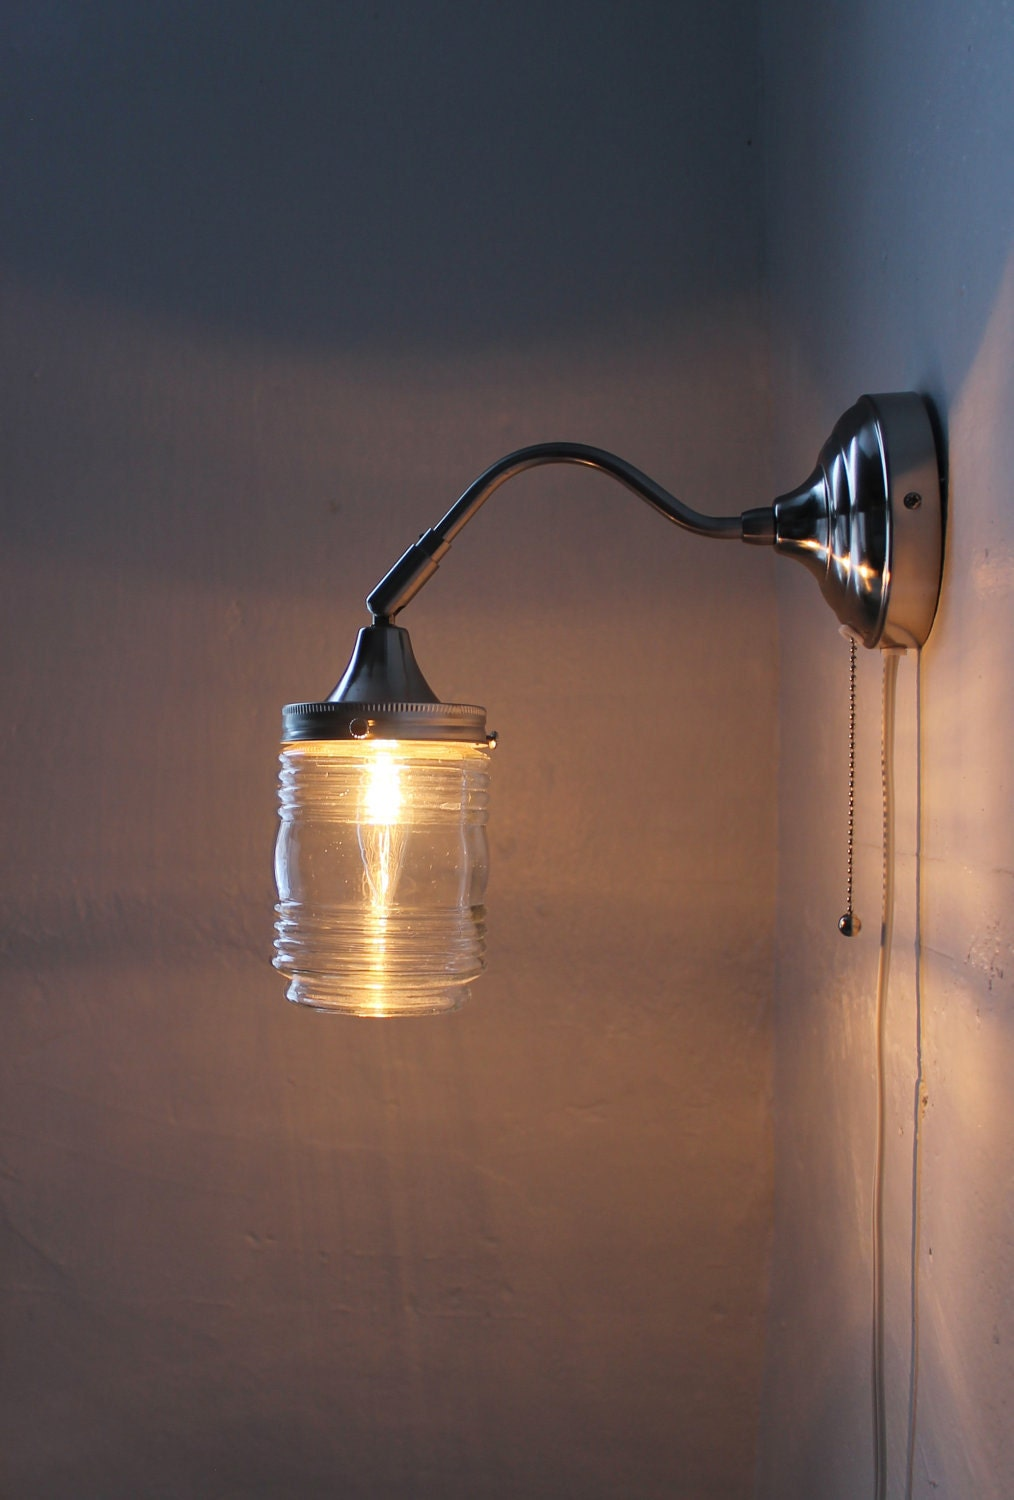 Wall Lamps Etsy : City Lights Gooseneck Wall Sconce Lamp Industrial Stainless